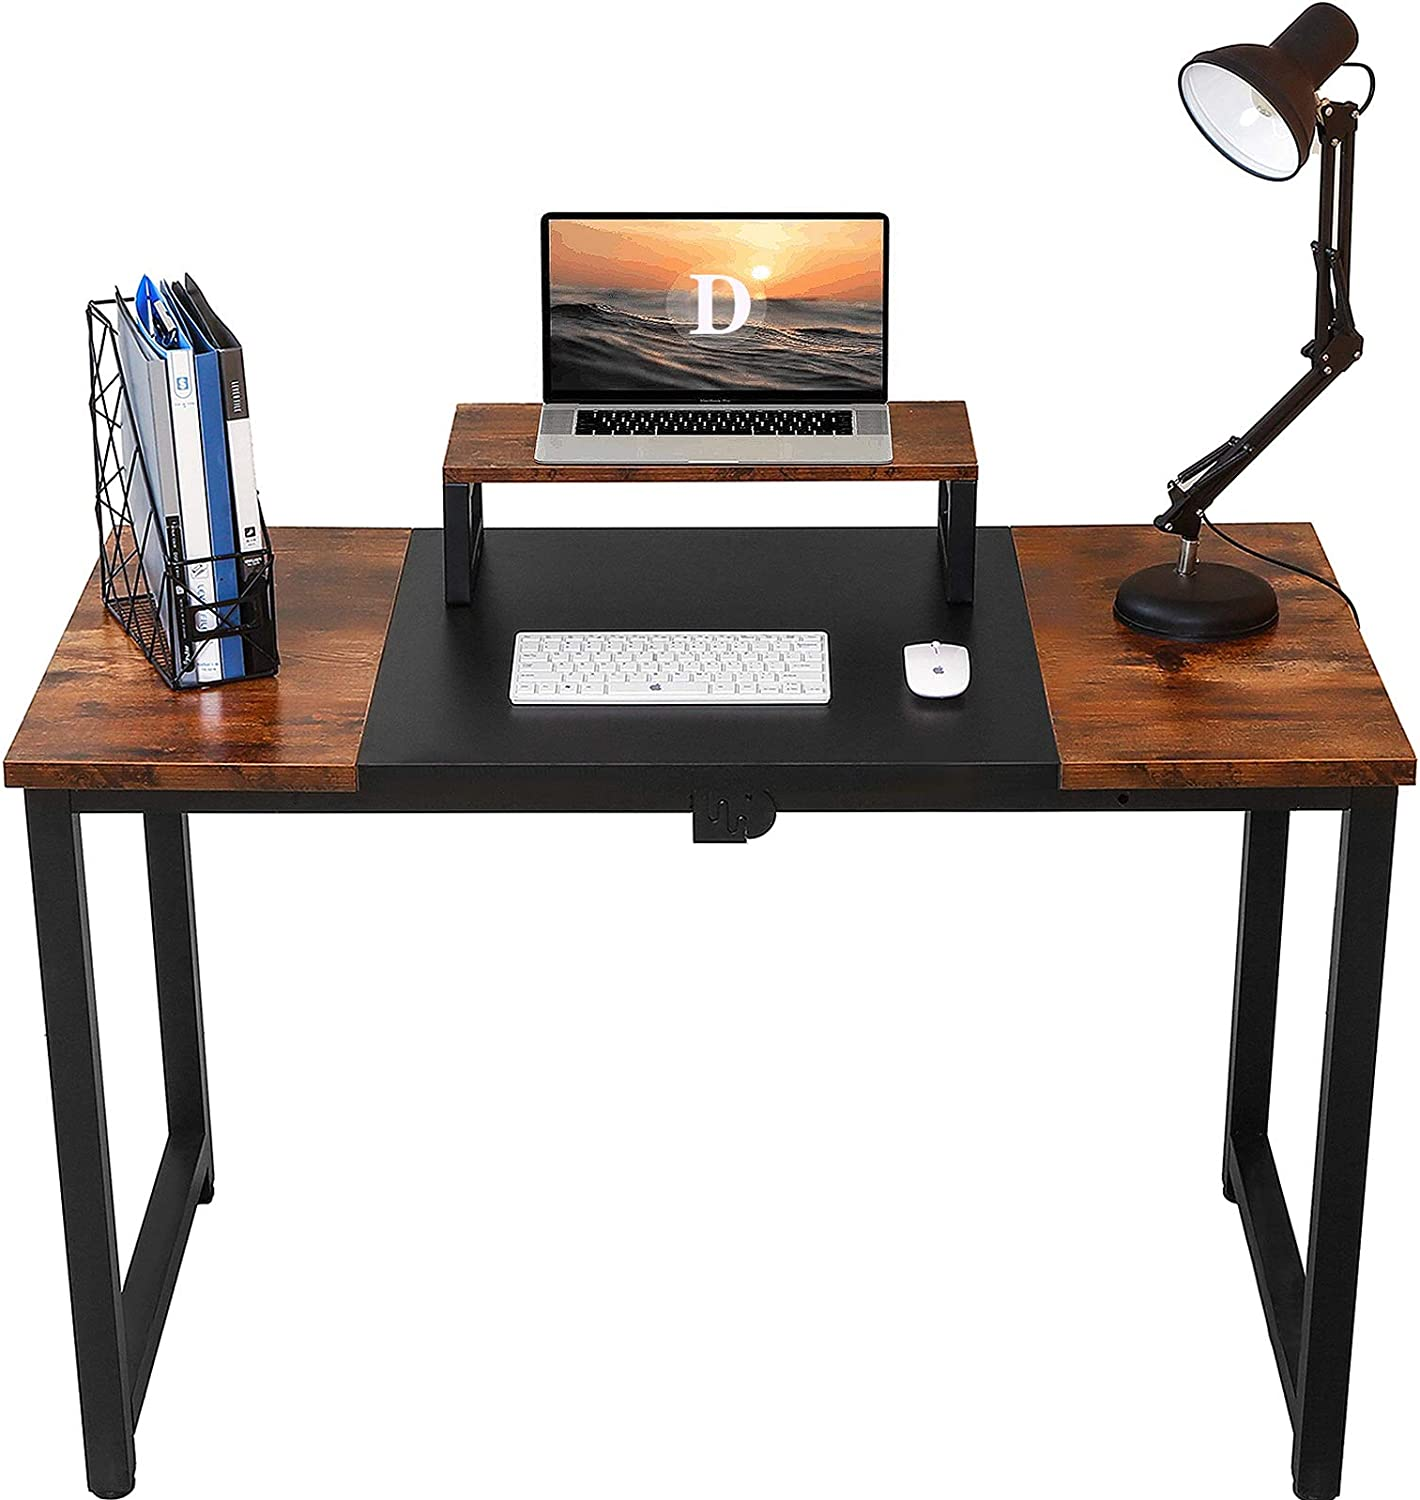 "Computer Desk 55"", Home Office Writing Study Laptop Table,Modern Simple Style PC Desk with Splice Board, Black and Vintage"